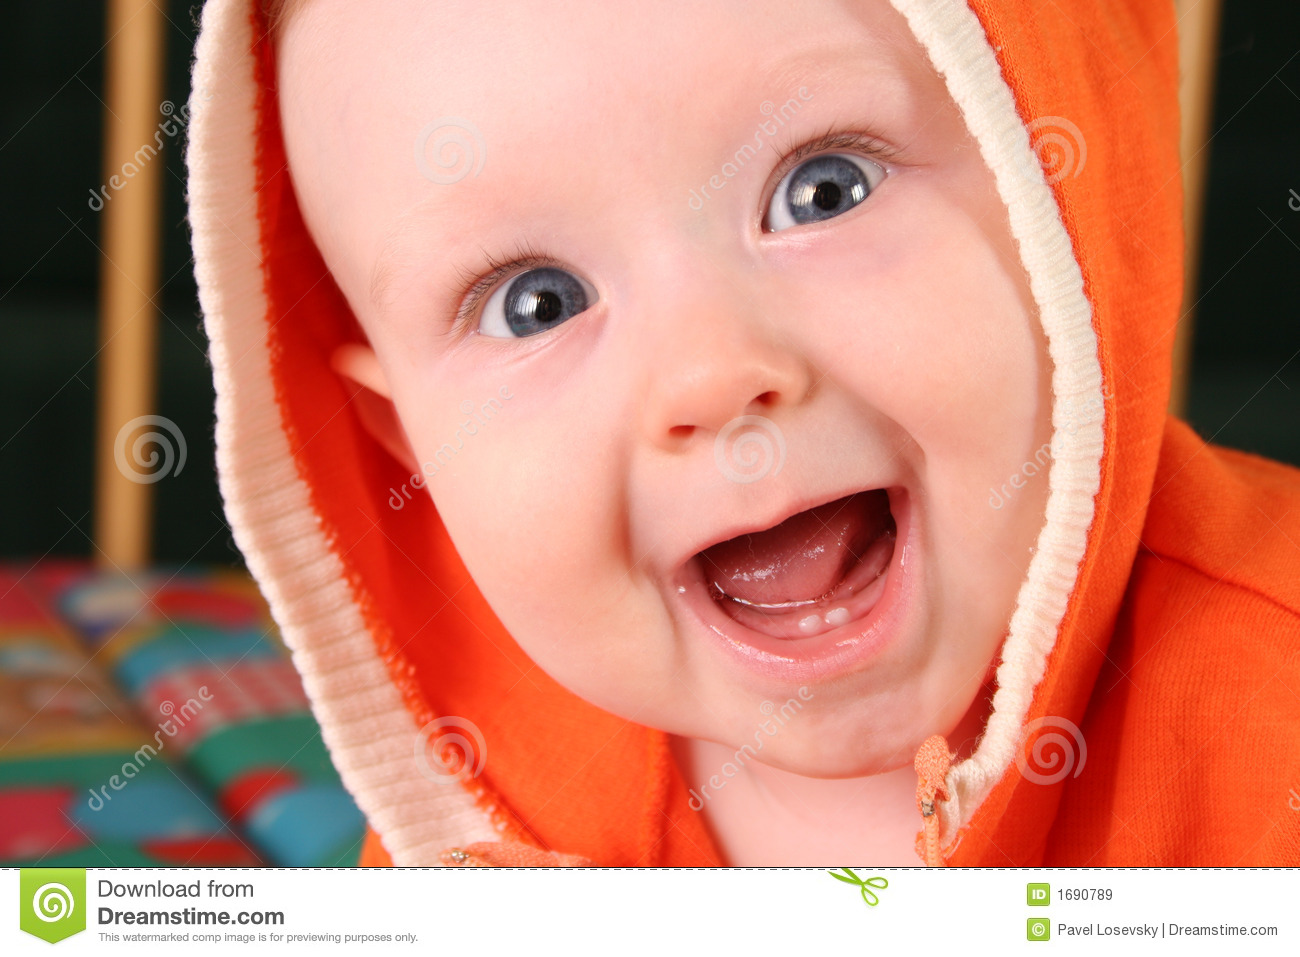 Smile Baby Boy Royalty Free Stock Images - Image: 1690789